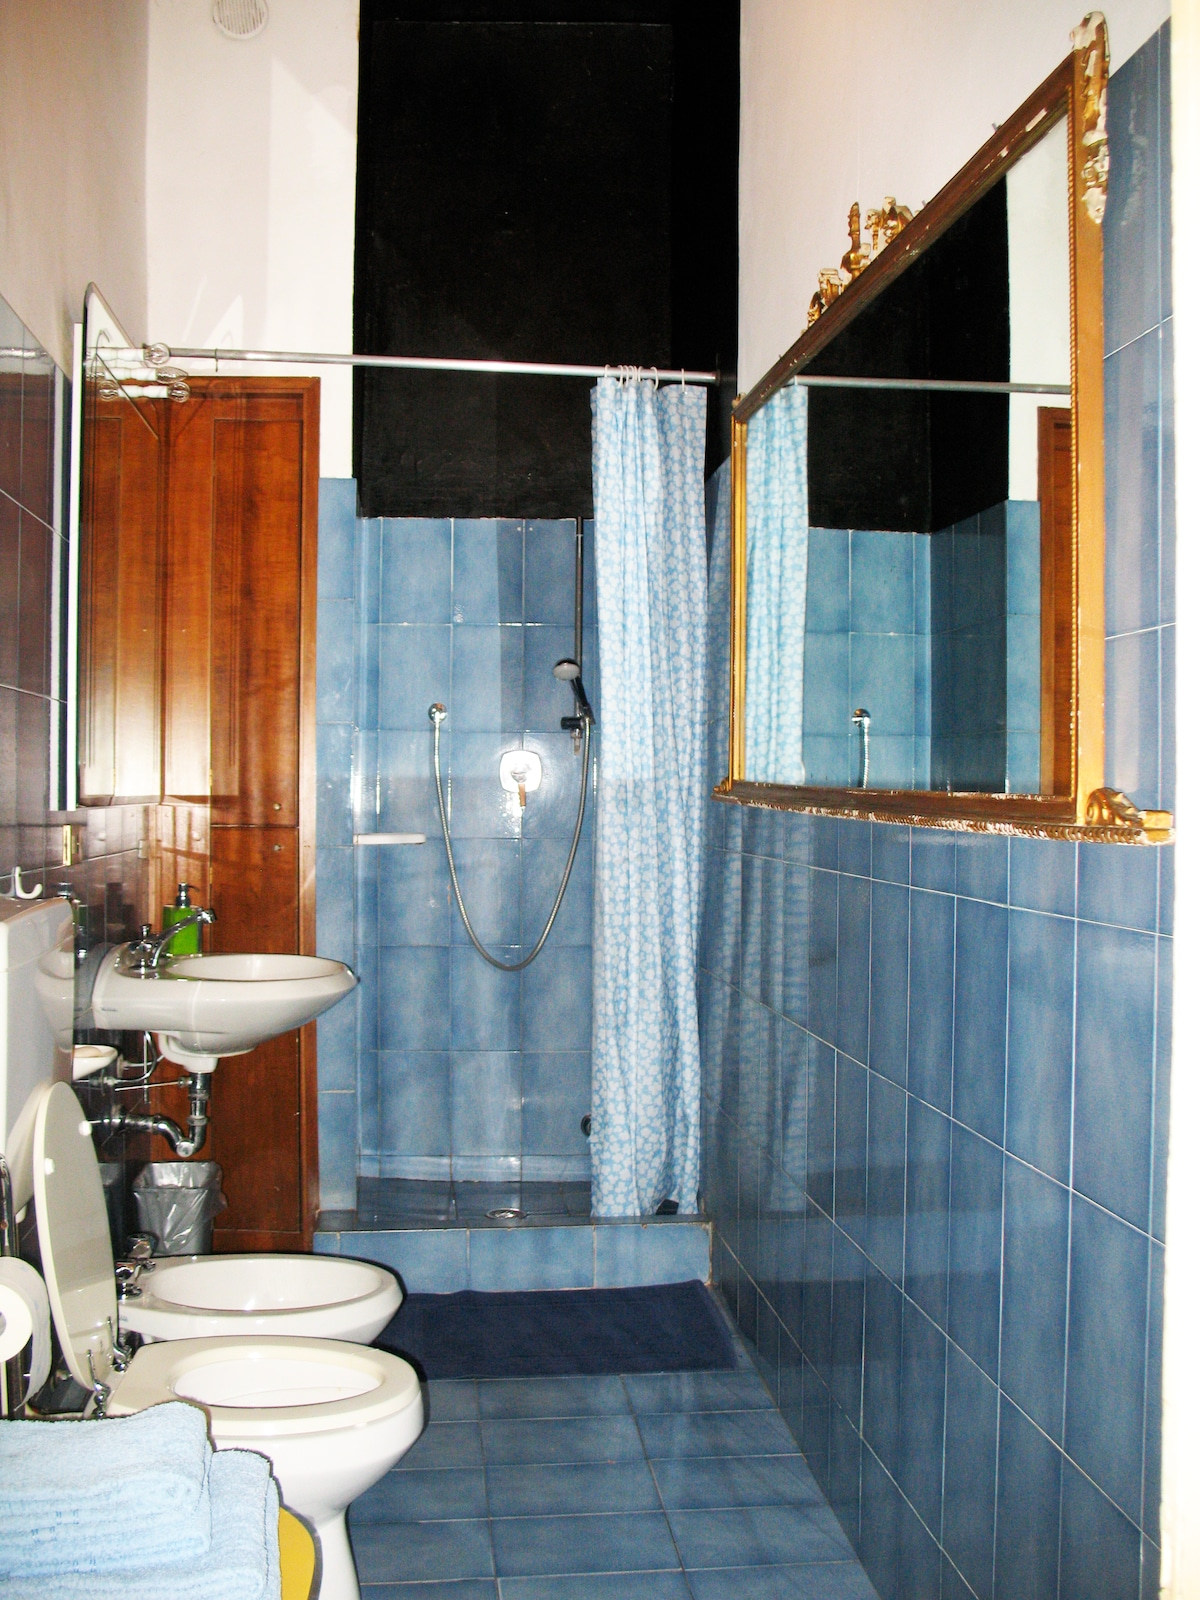 The bathroom, large and clean